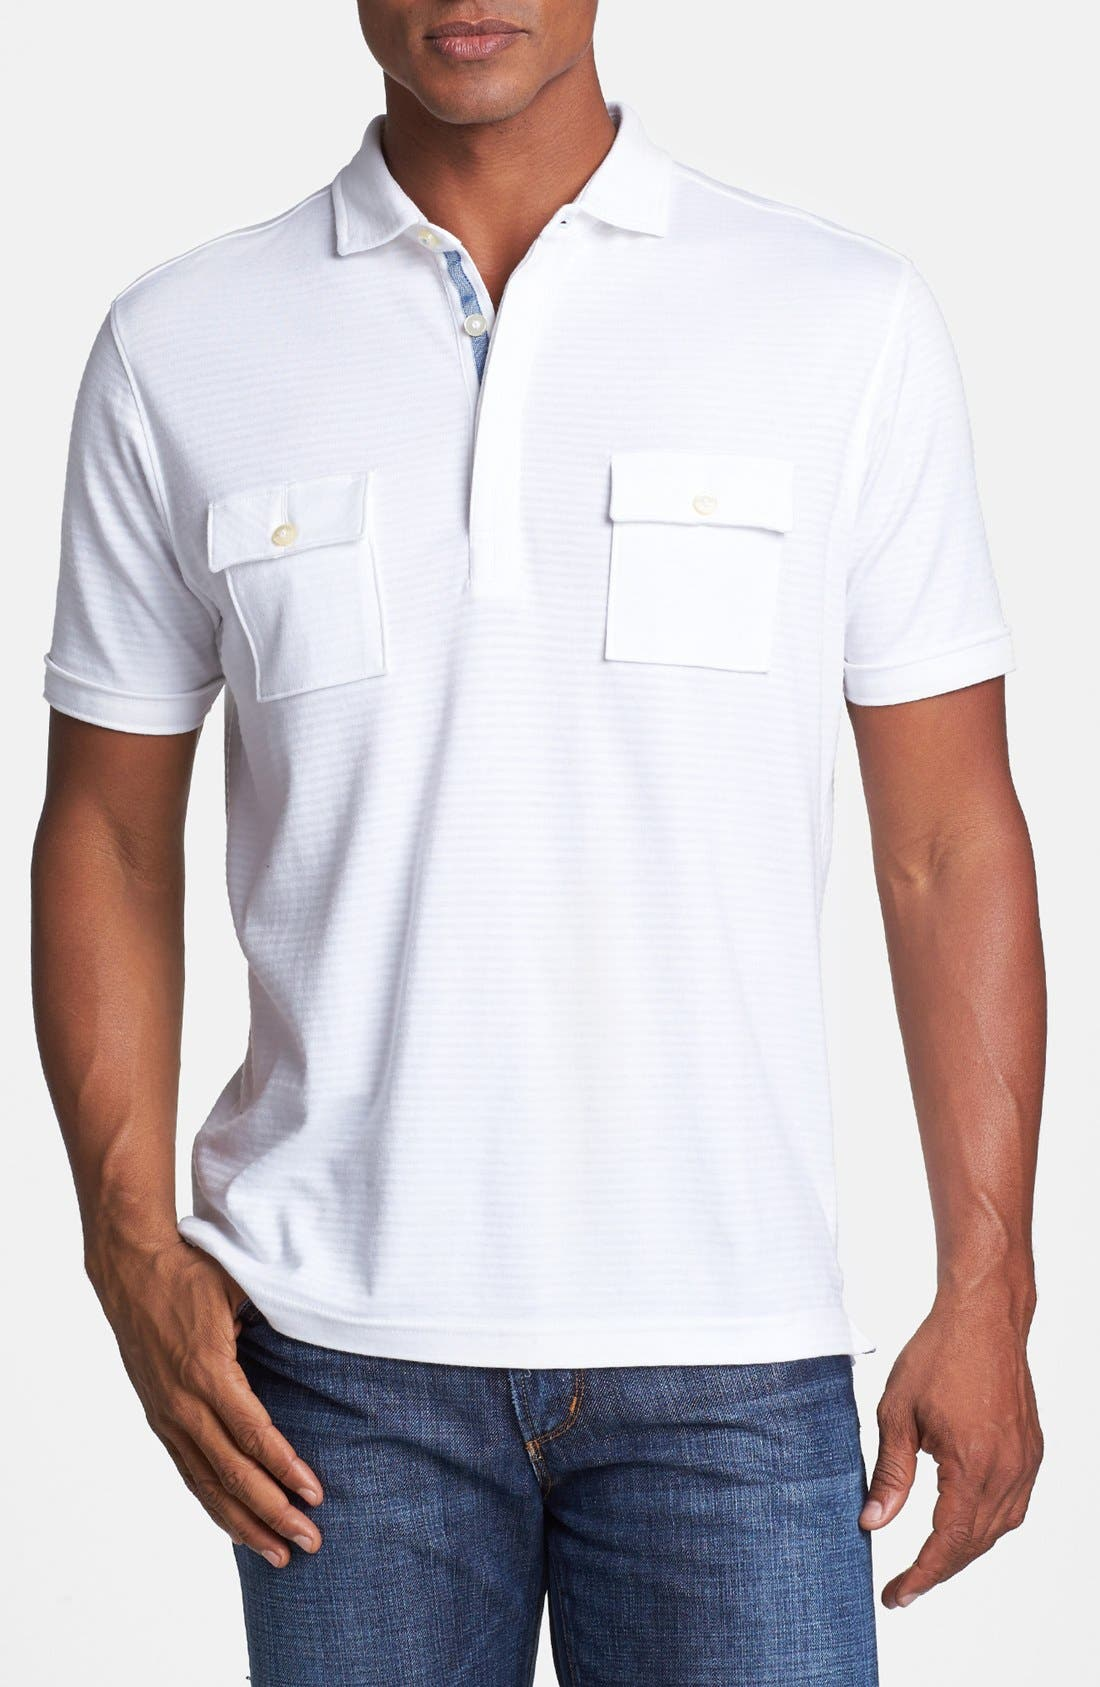 Alternate Image 1 Selected - Tommy Bahama 'Shadow Stripe Spectator' Modern Fit Polo